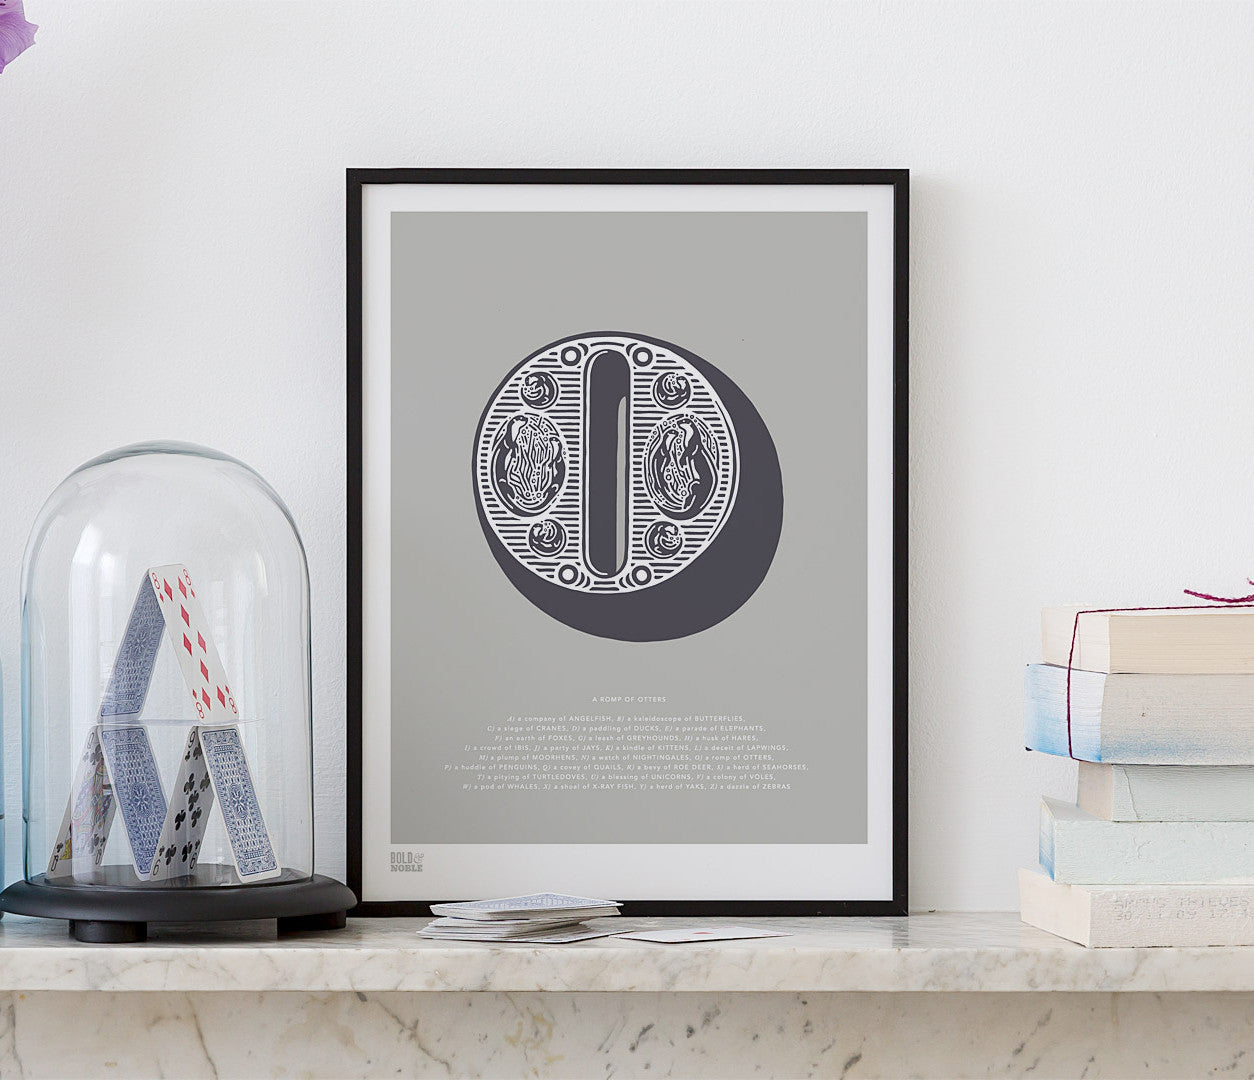 Pictures and Wall Art, Screen Printed Illustrated Letter O design in putty grey